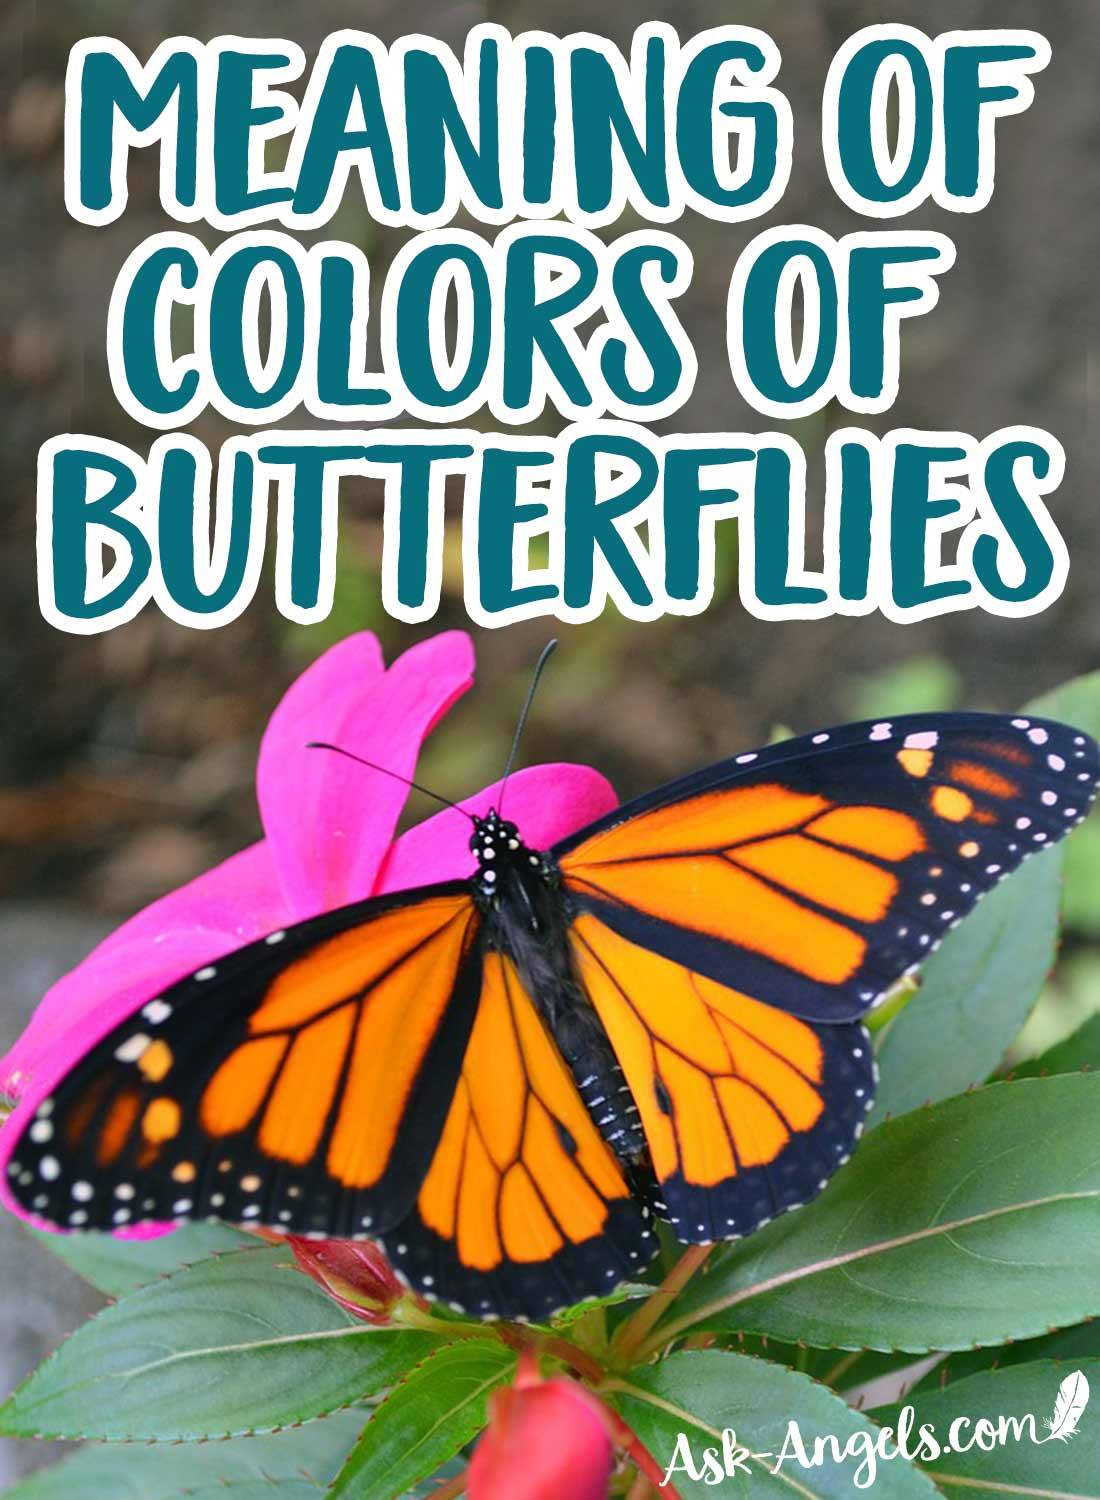 Meaning of Certain Colors of Butterflies